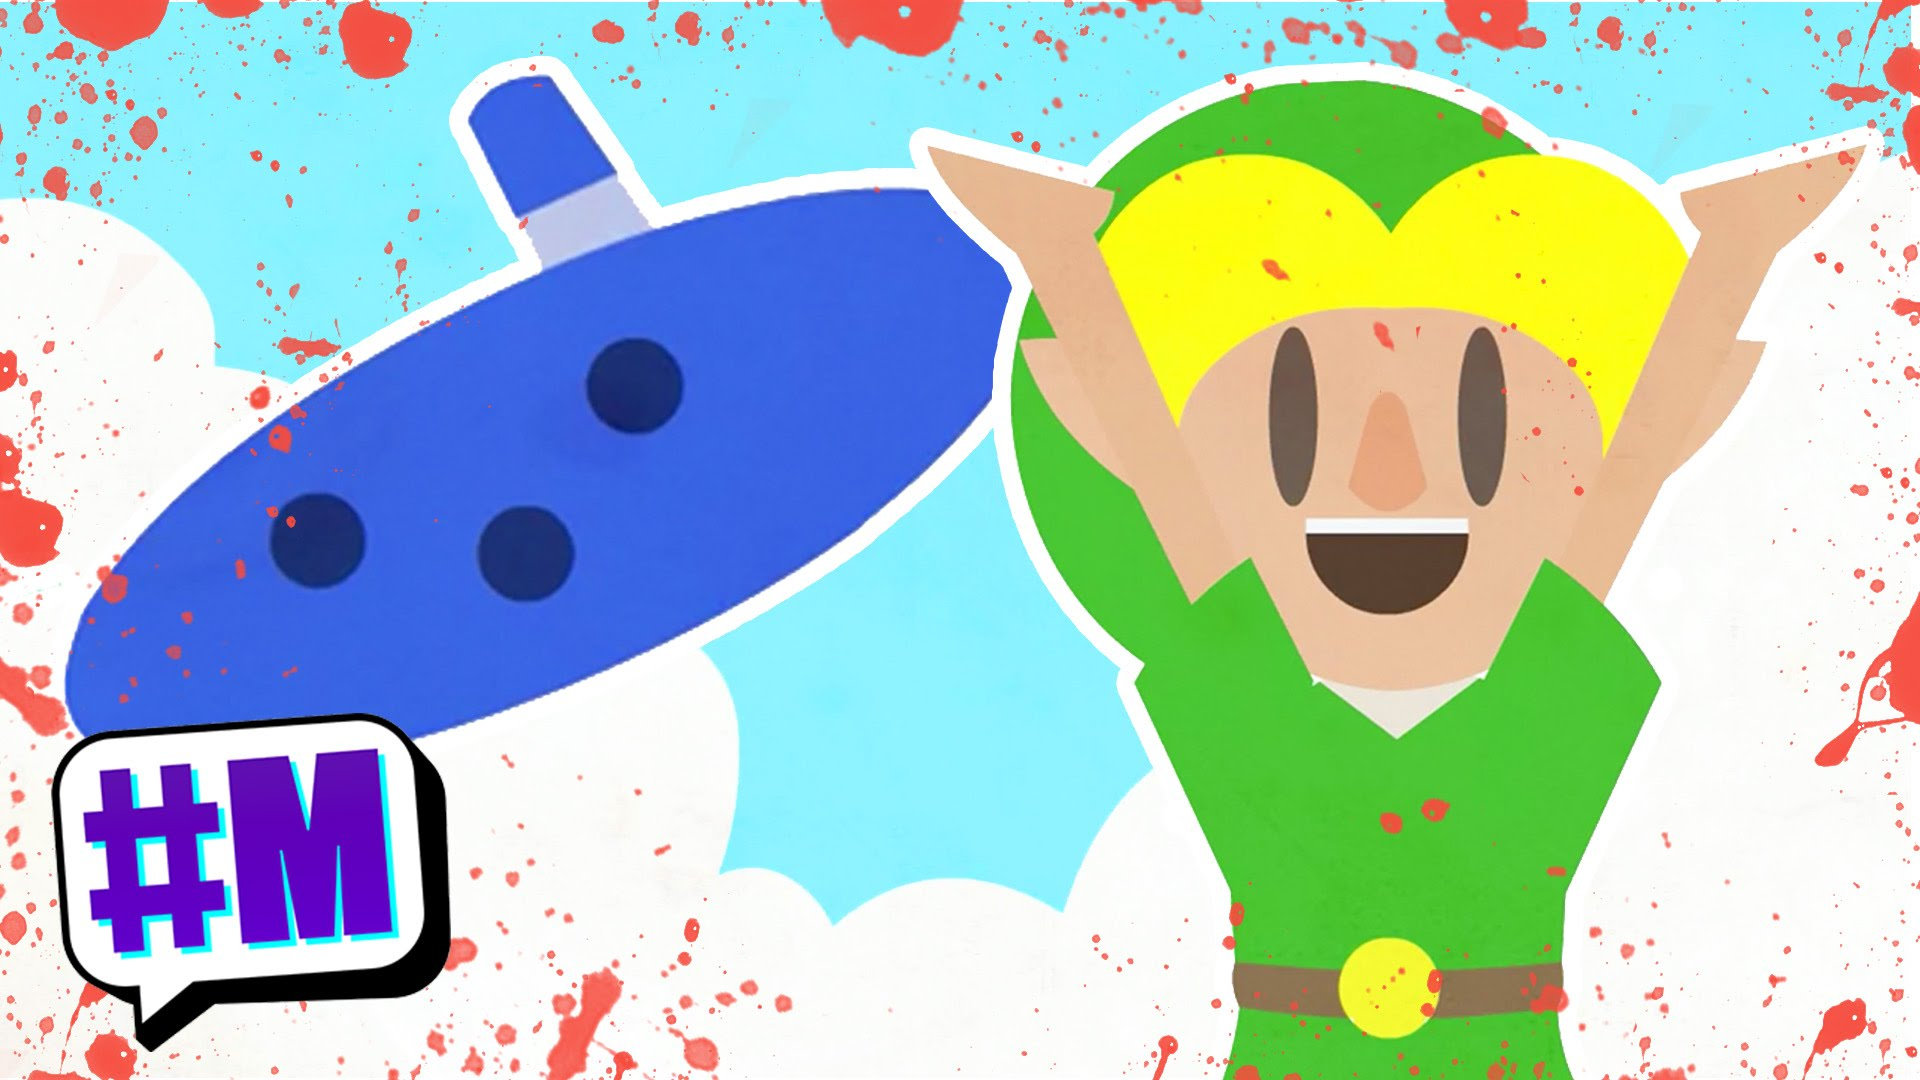 An Animated Look at the Impossible Science Behind the Ocarina of Time From 'The Legend of Zelda'